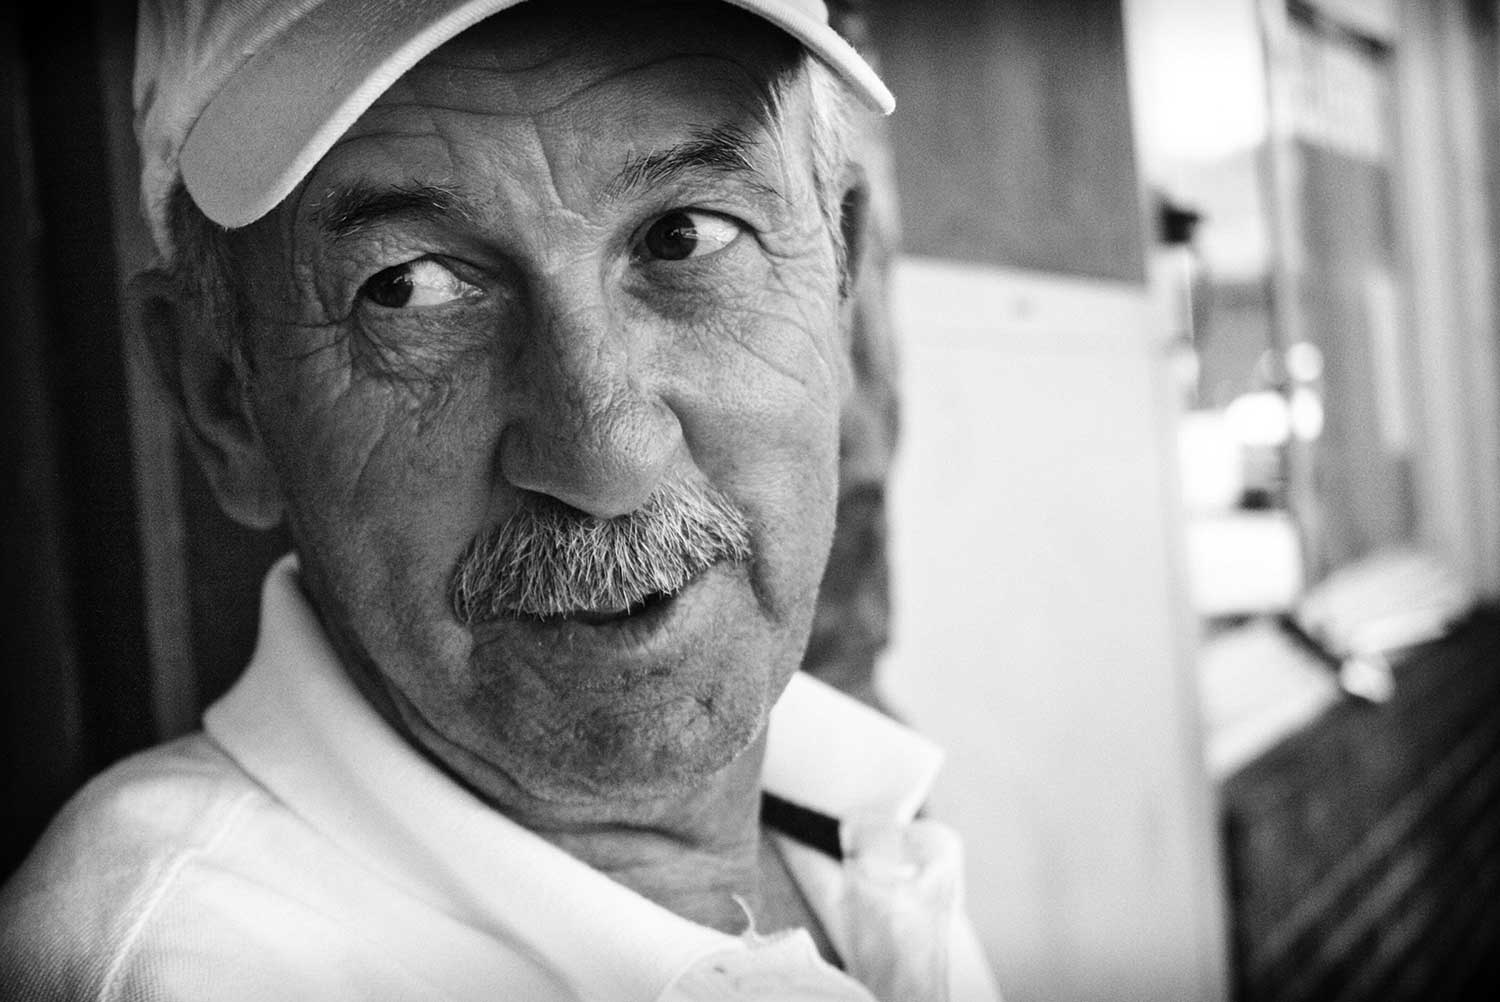 Jimmy Goins relaxes outside of Katie's Carry Out & Catering, which is run by his wife Katie Goins. photo by Nate Patton - 2013